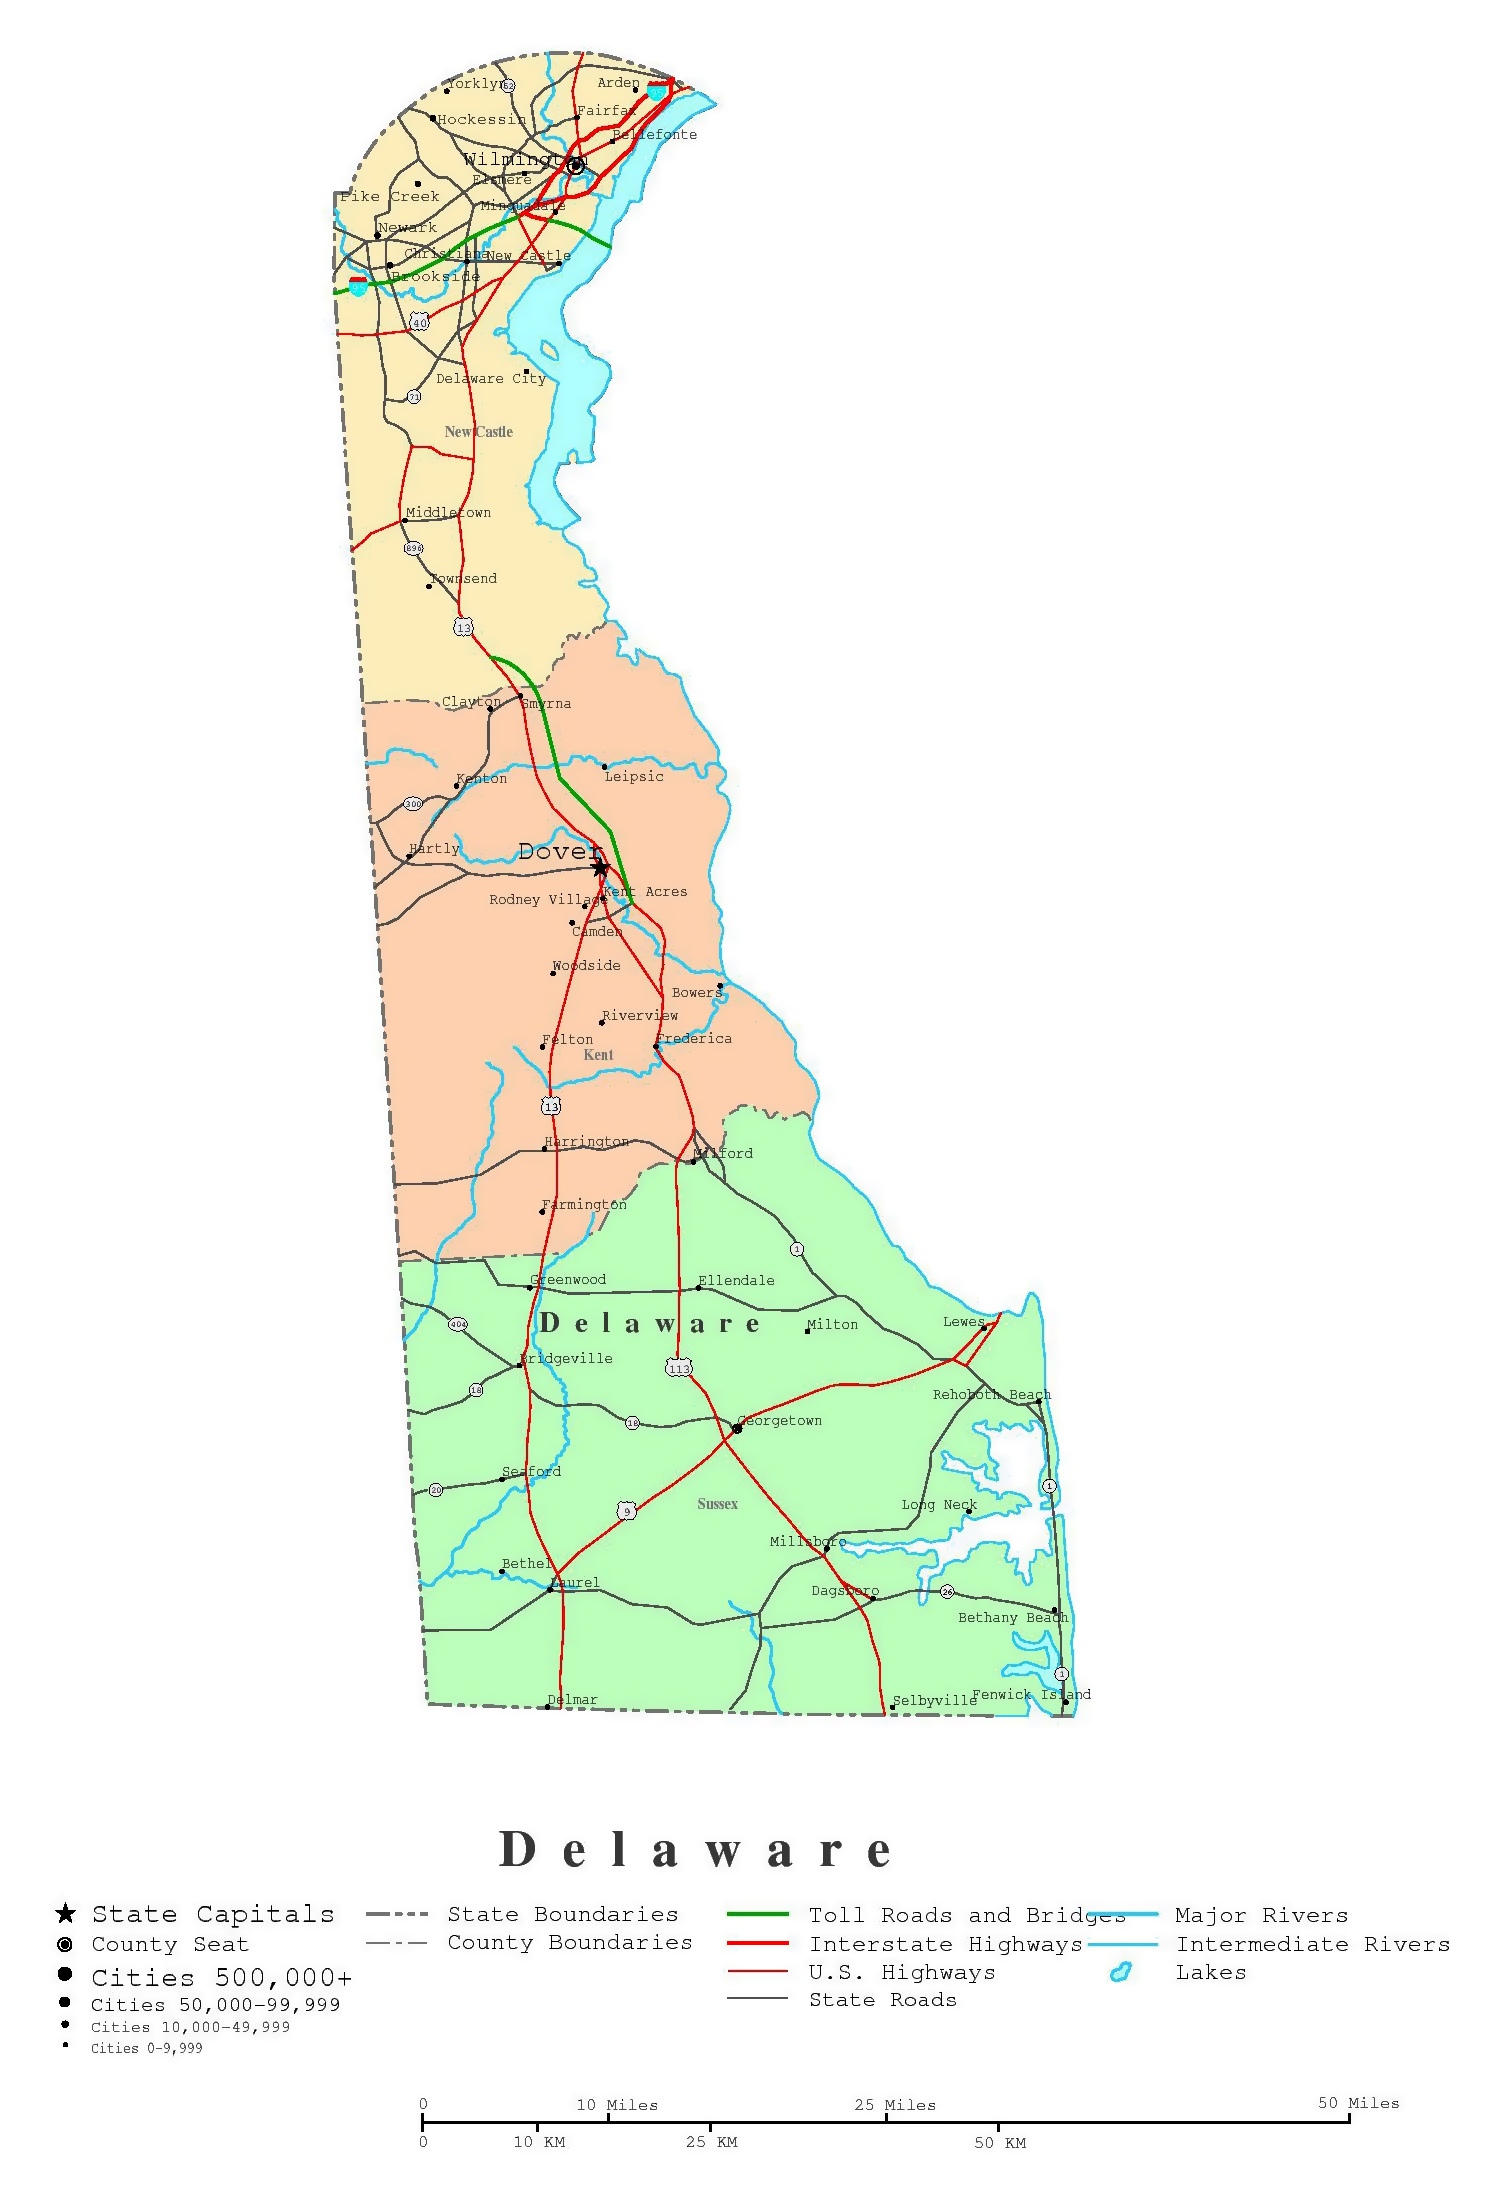 Large Detailed Administrative Map Of Delaware State With Roads - Us-map-delaware-state